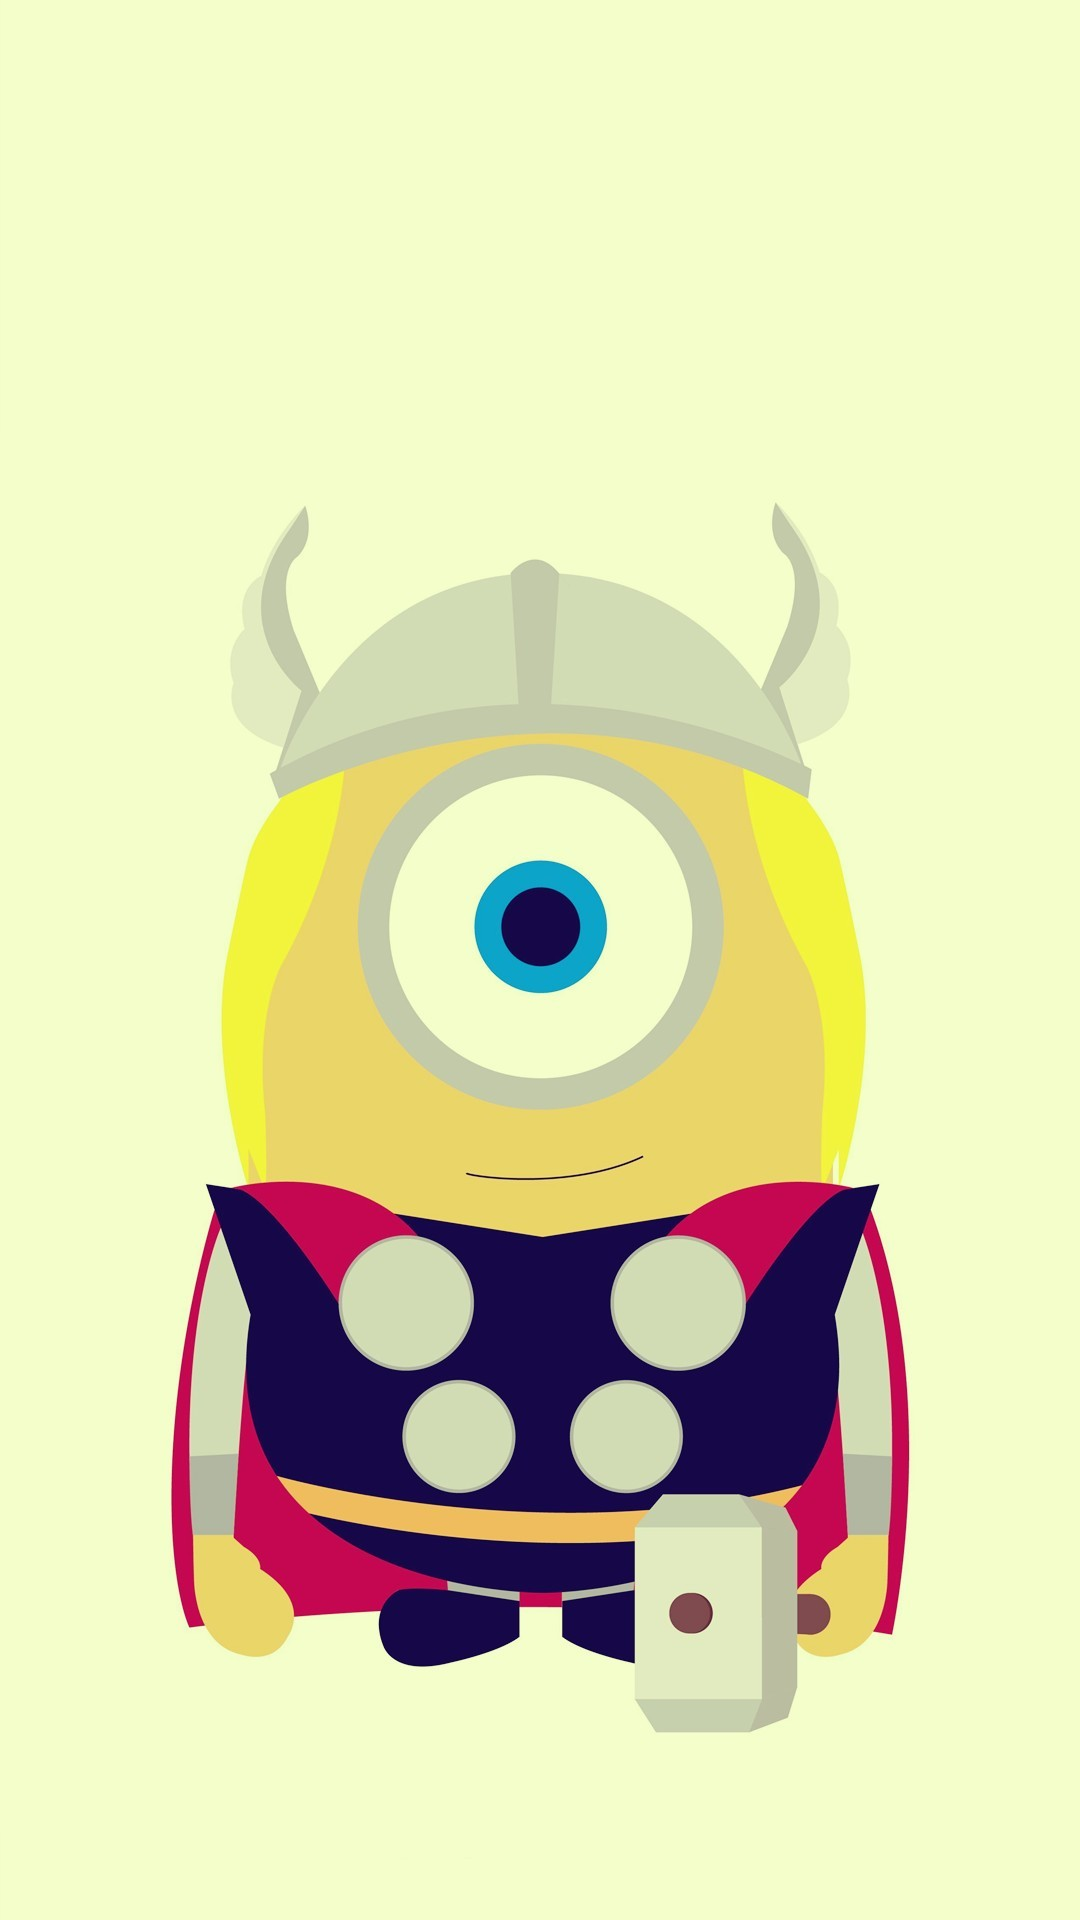 Funny Thor Minion Avengers iphone 6 plus wallpaper HD – 2014 Halloween,  Despicable Me #